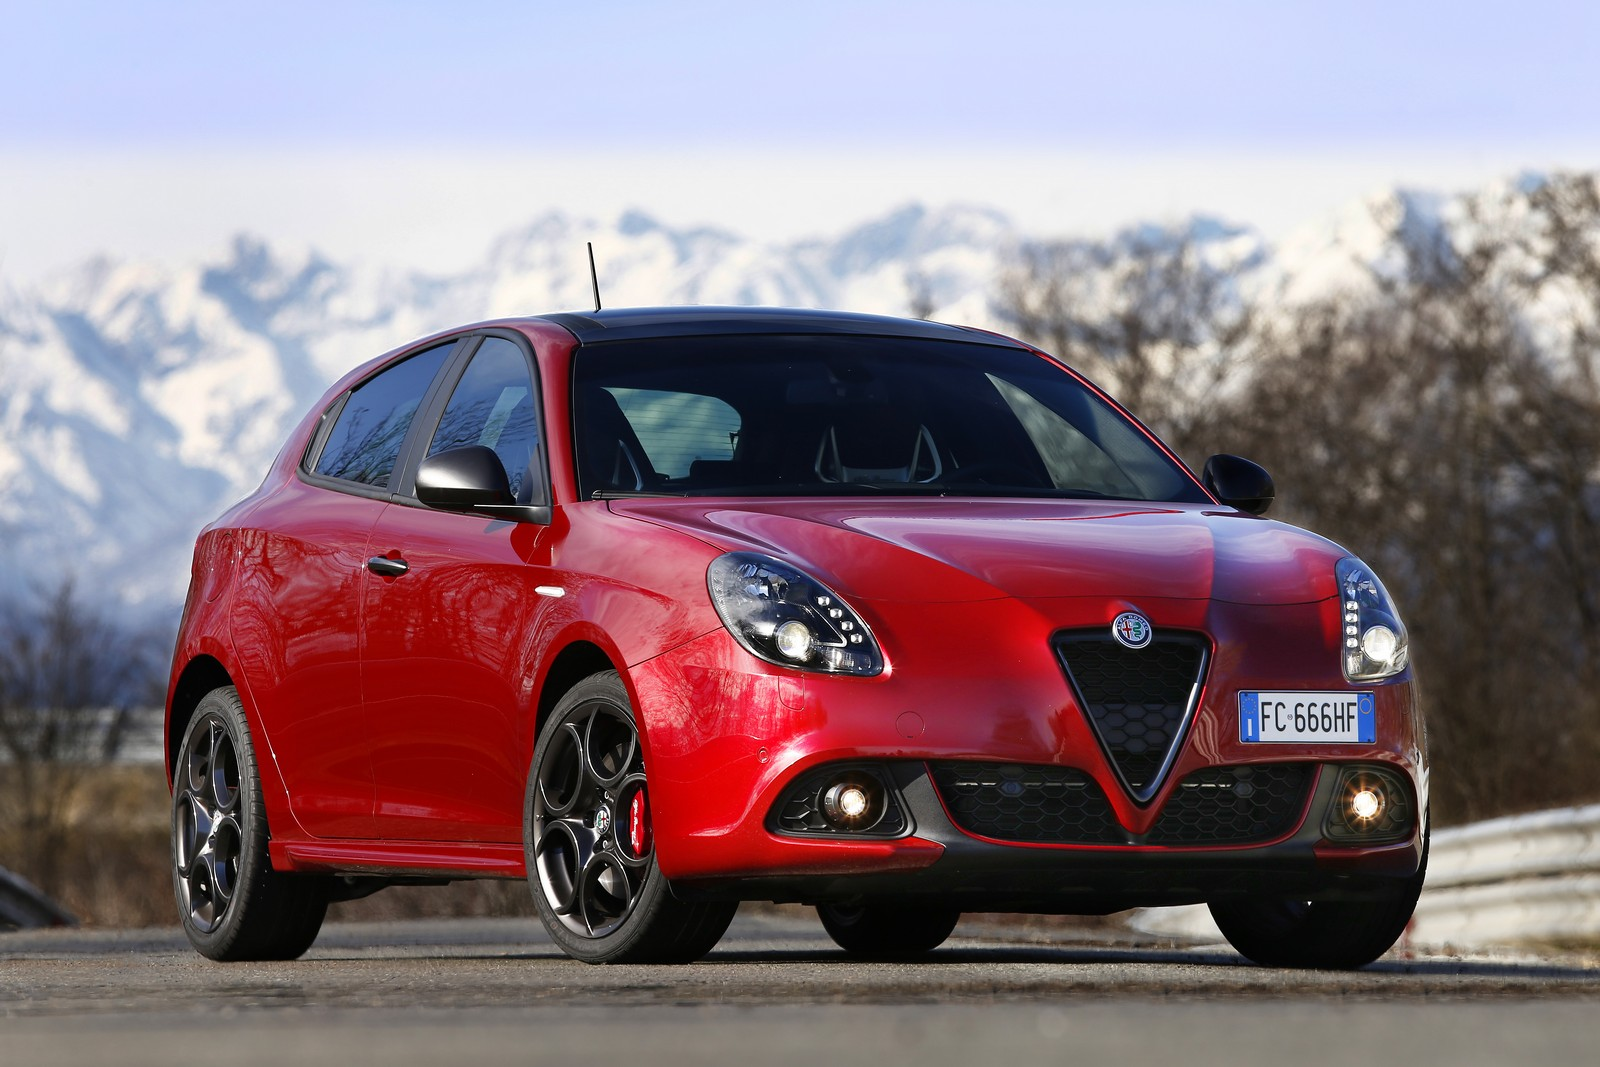 2019 Alfa Romeo Giulietta Berlina photo - 1